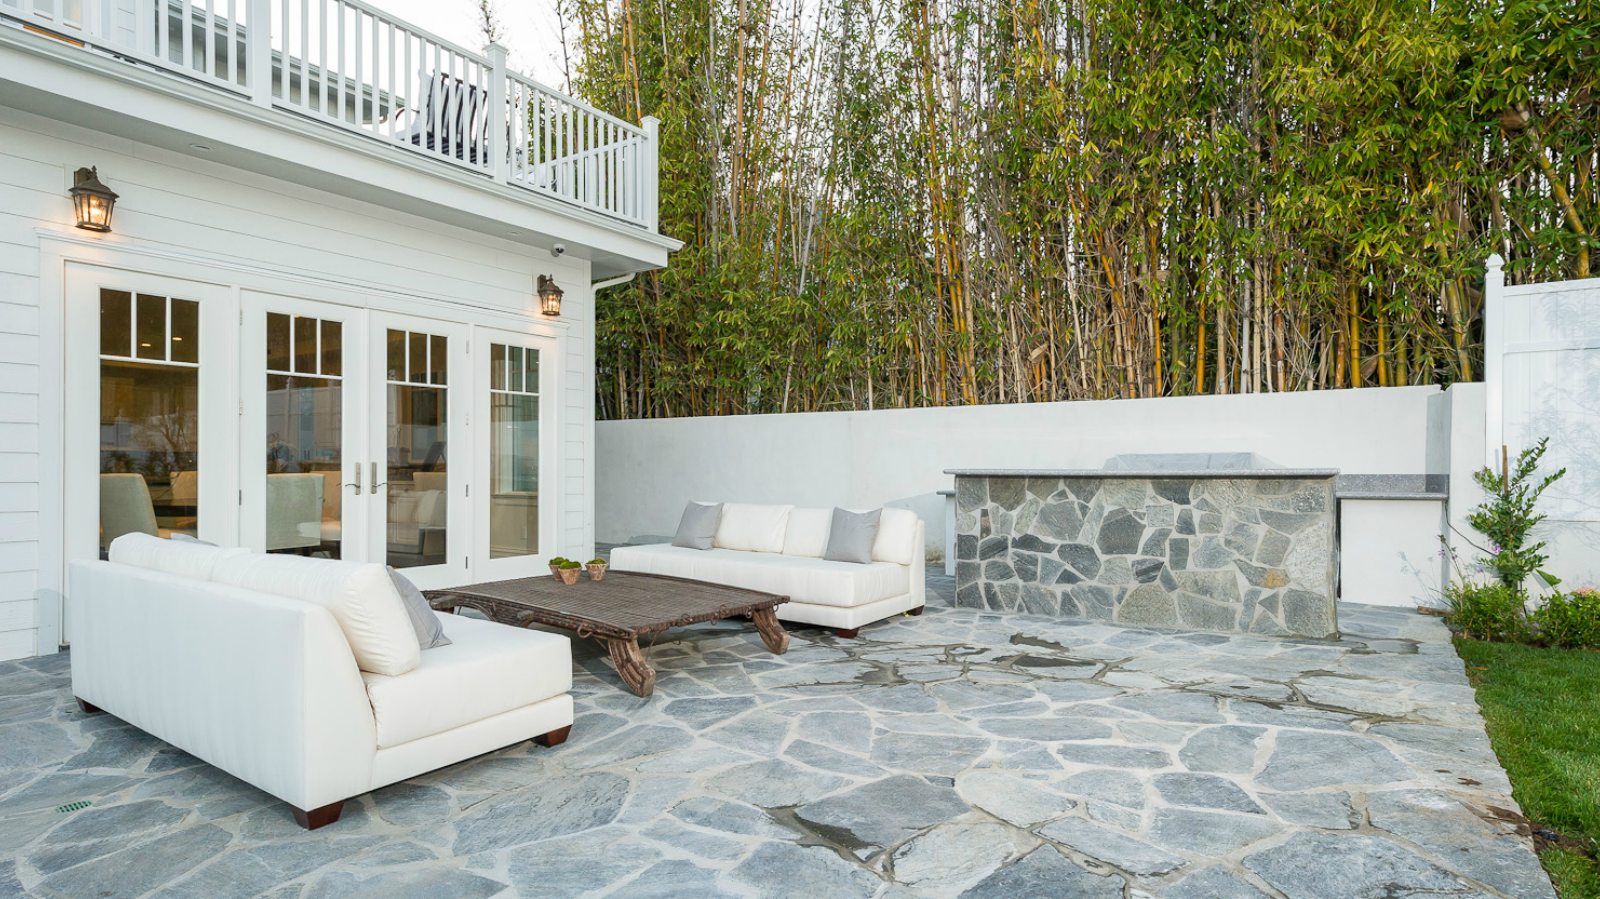 The backyard patio is in gray flagstone with a heavy, solid coffee table between two cozy sofas just below the balcony outside of the primary bedroom.